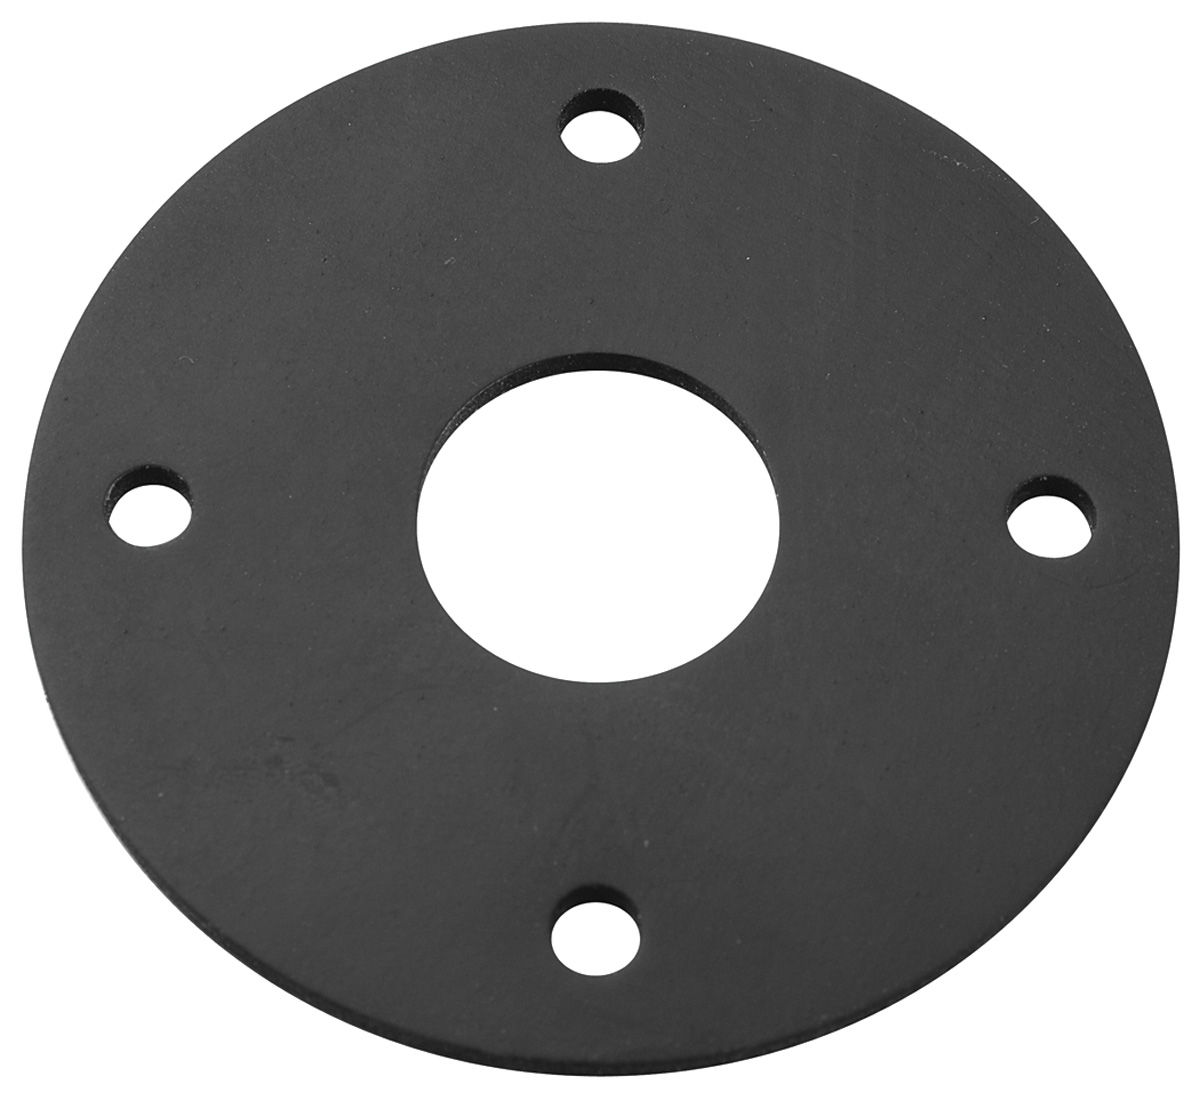 Gasket, Hood Pin Plate, 1970-72 Chevelle/El Camino, SS